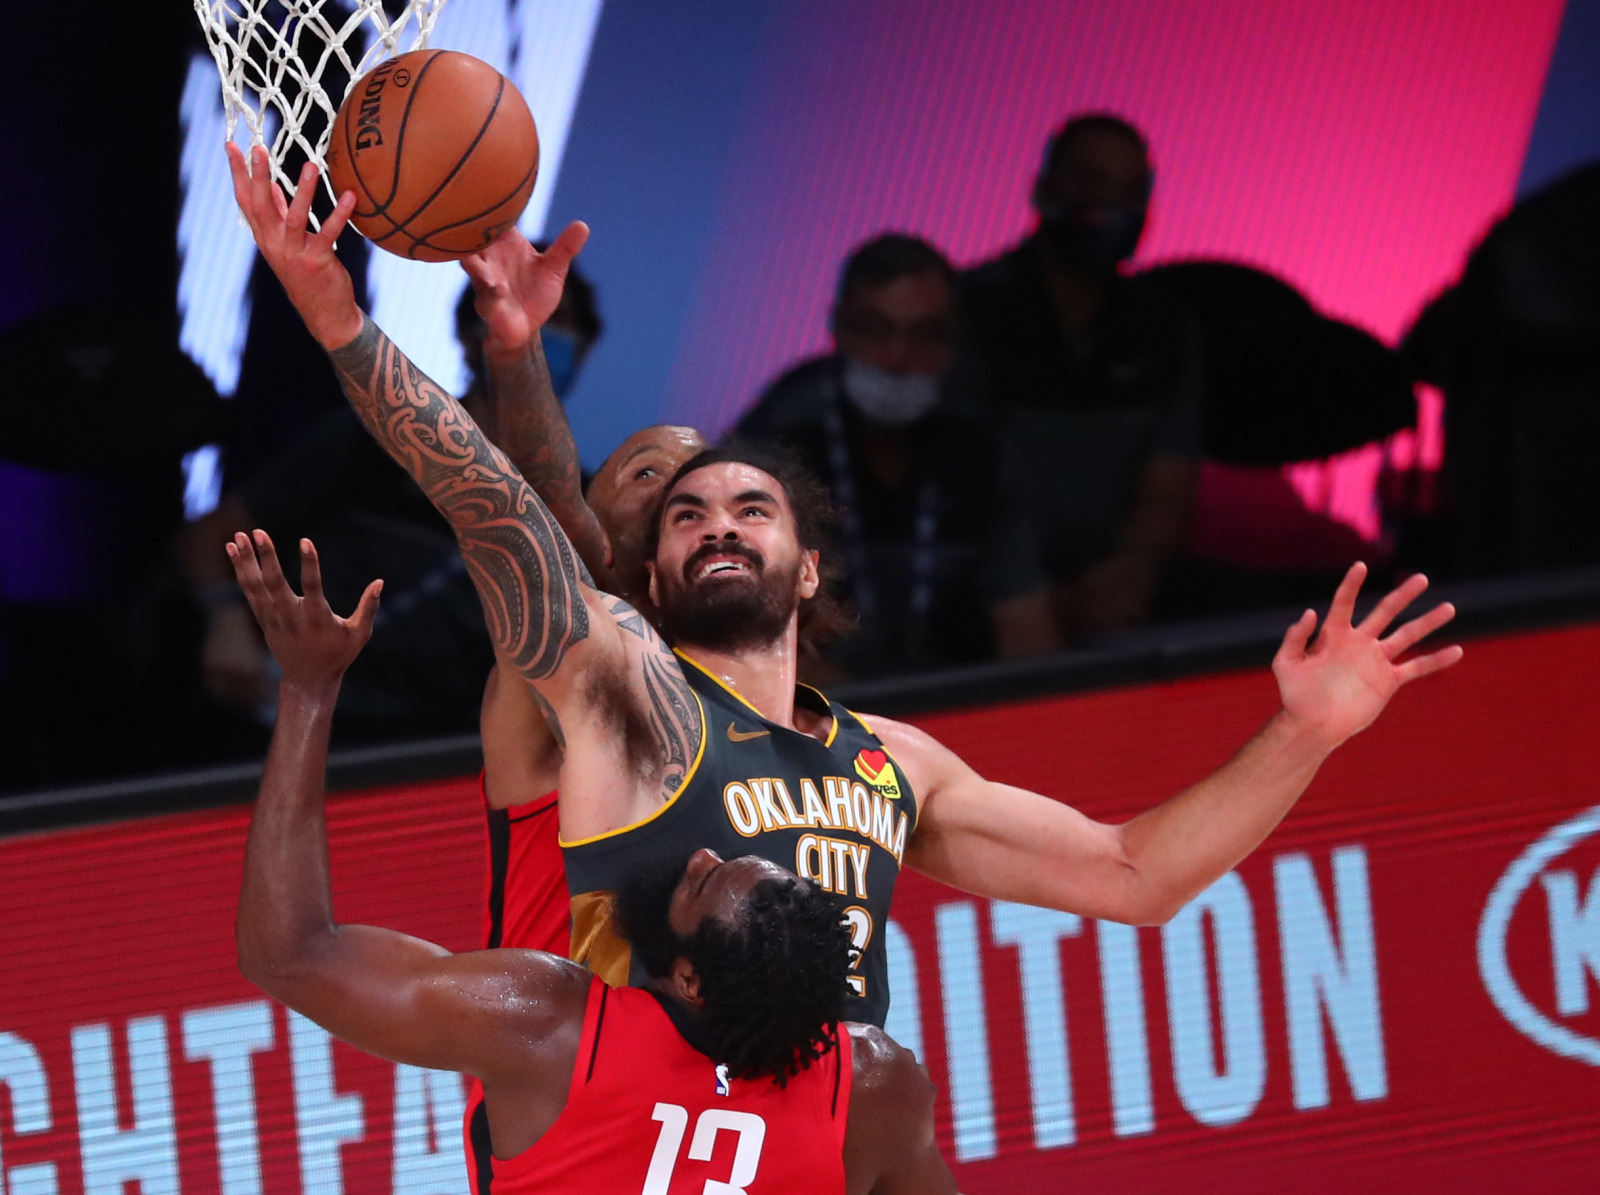 New Orleans Pelicans Did They Make A Steven Adams Sized Mistake